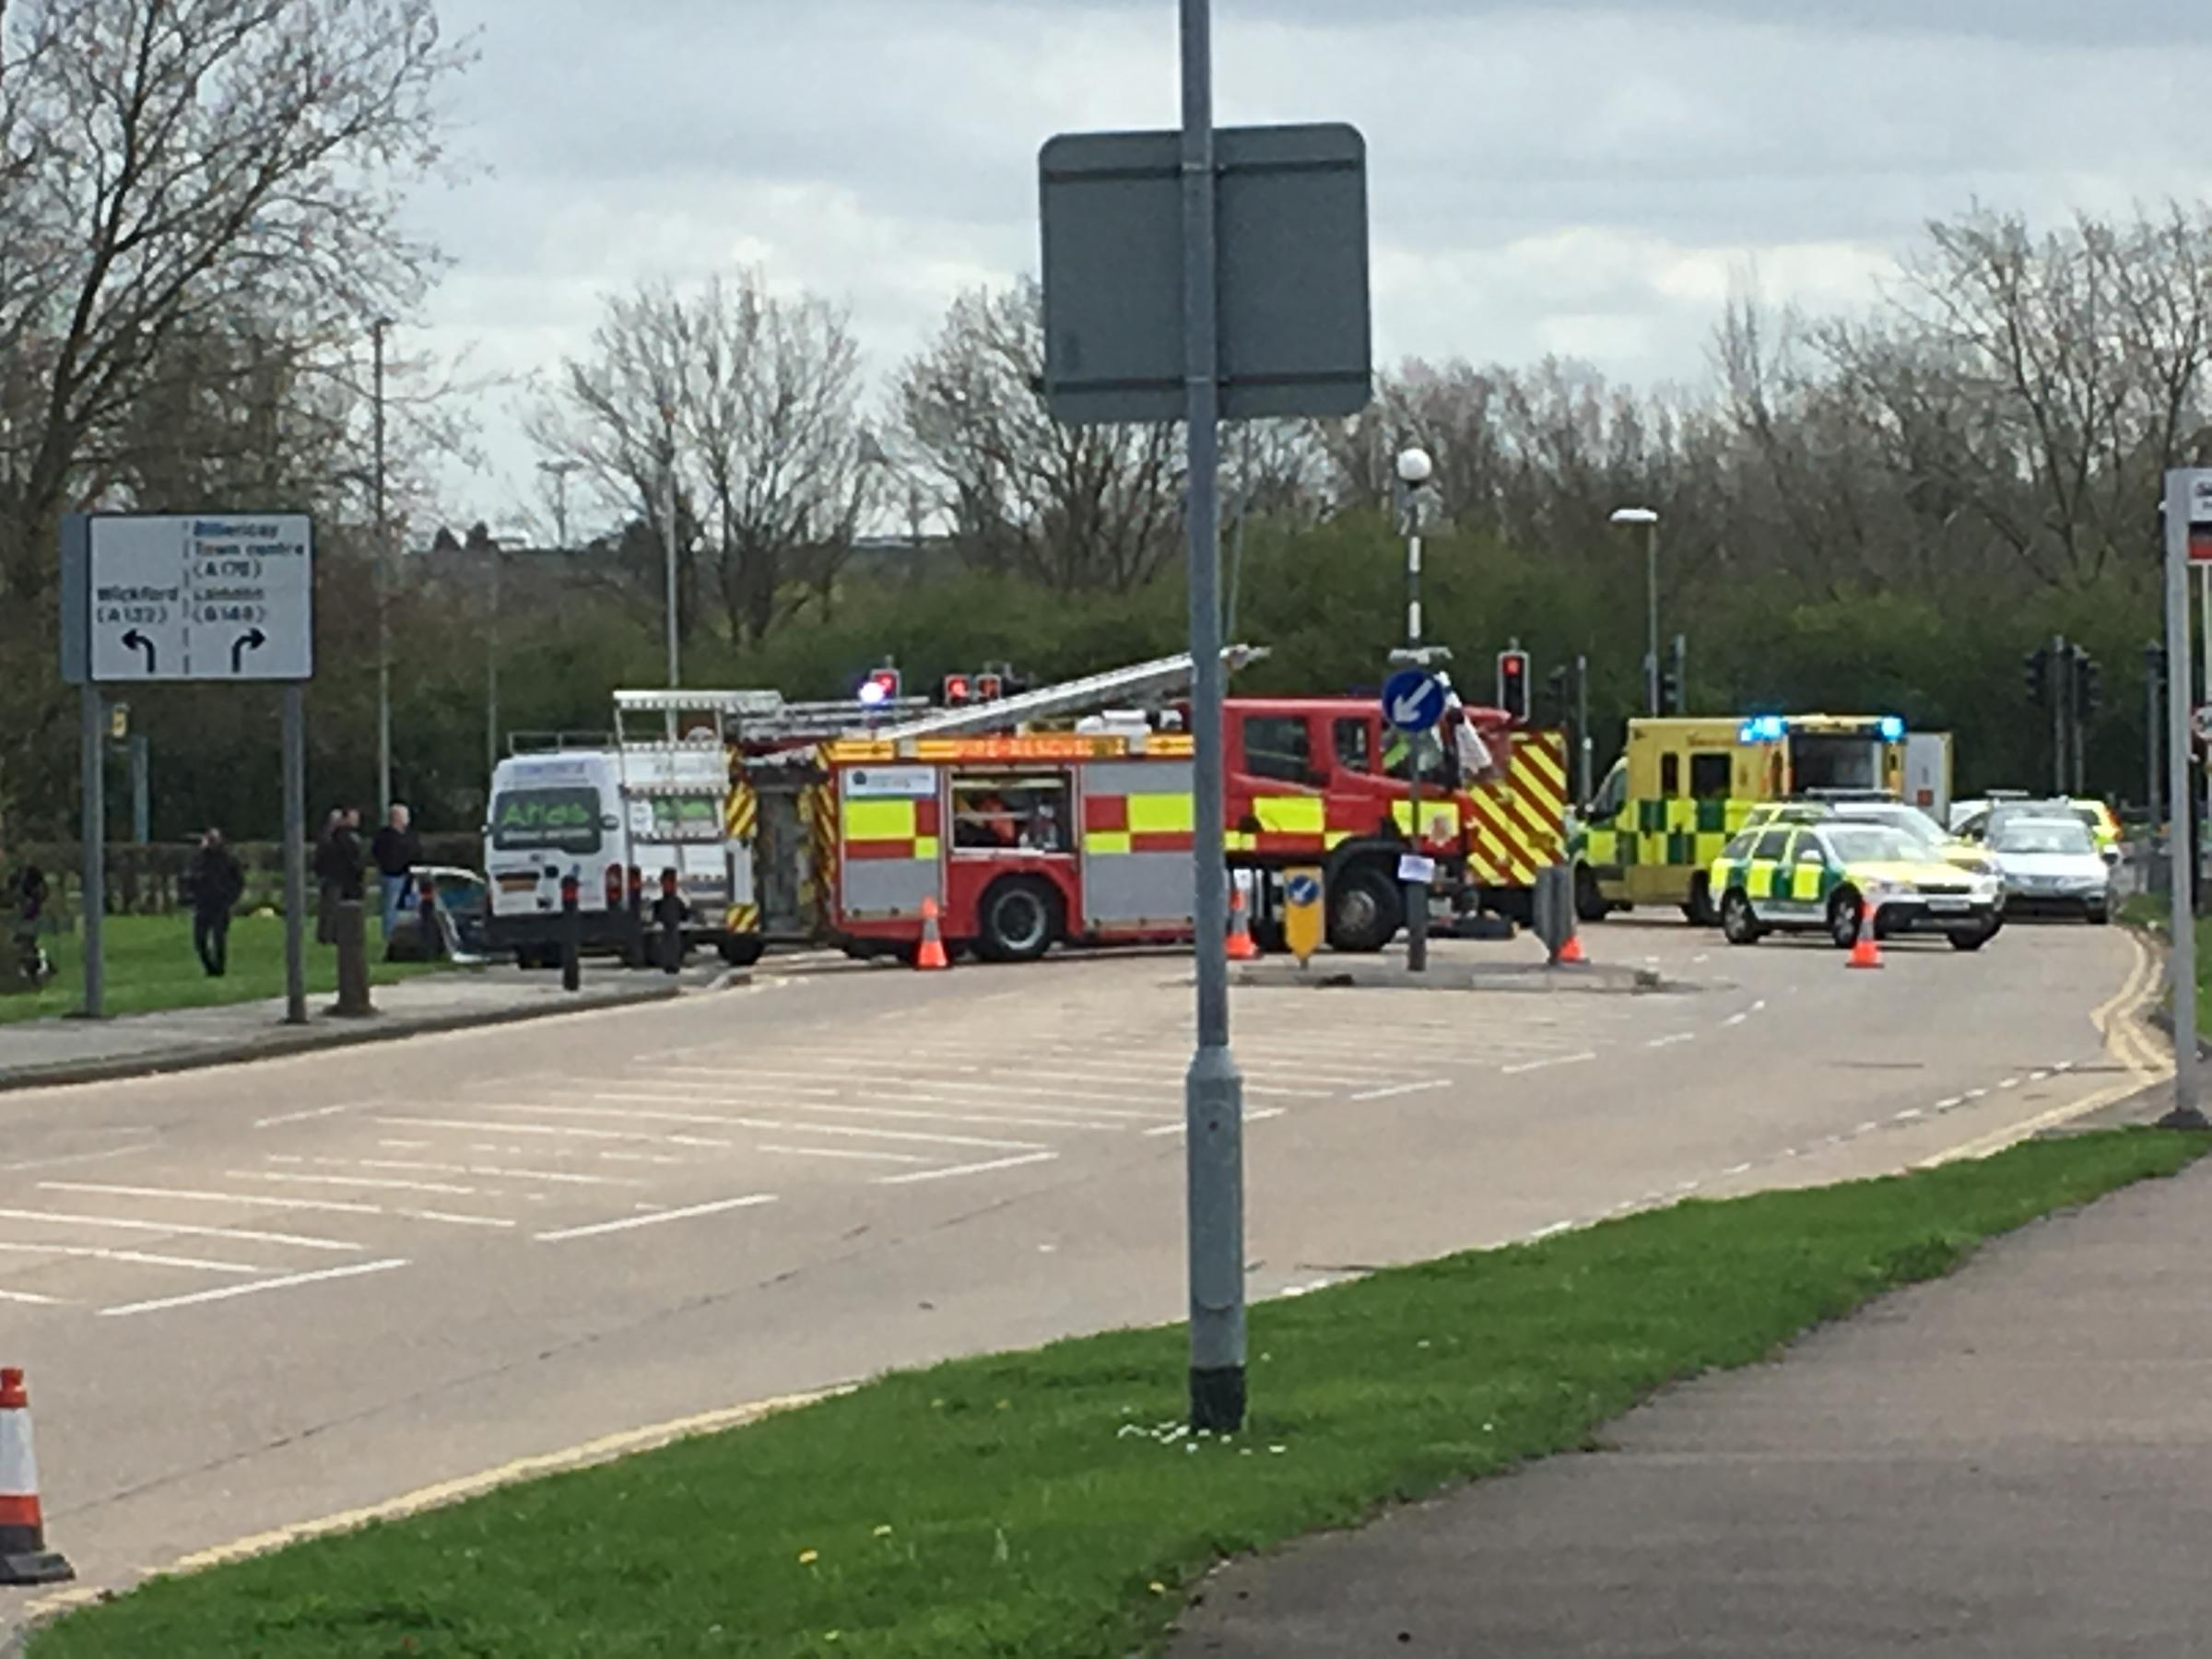 Emergency services on scene of crash